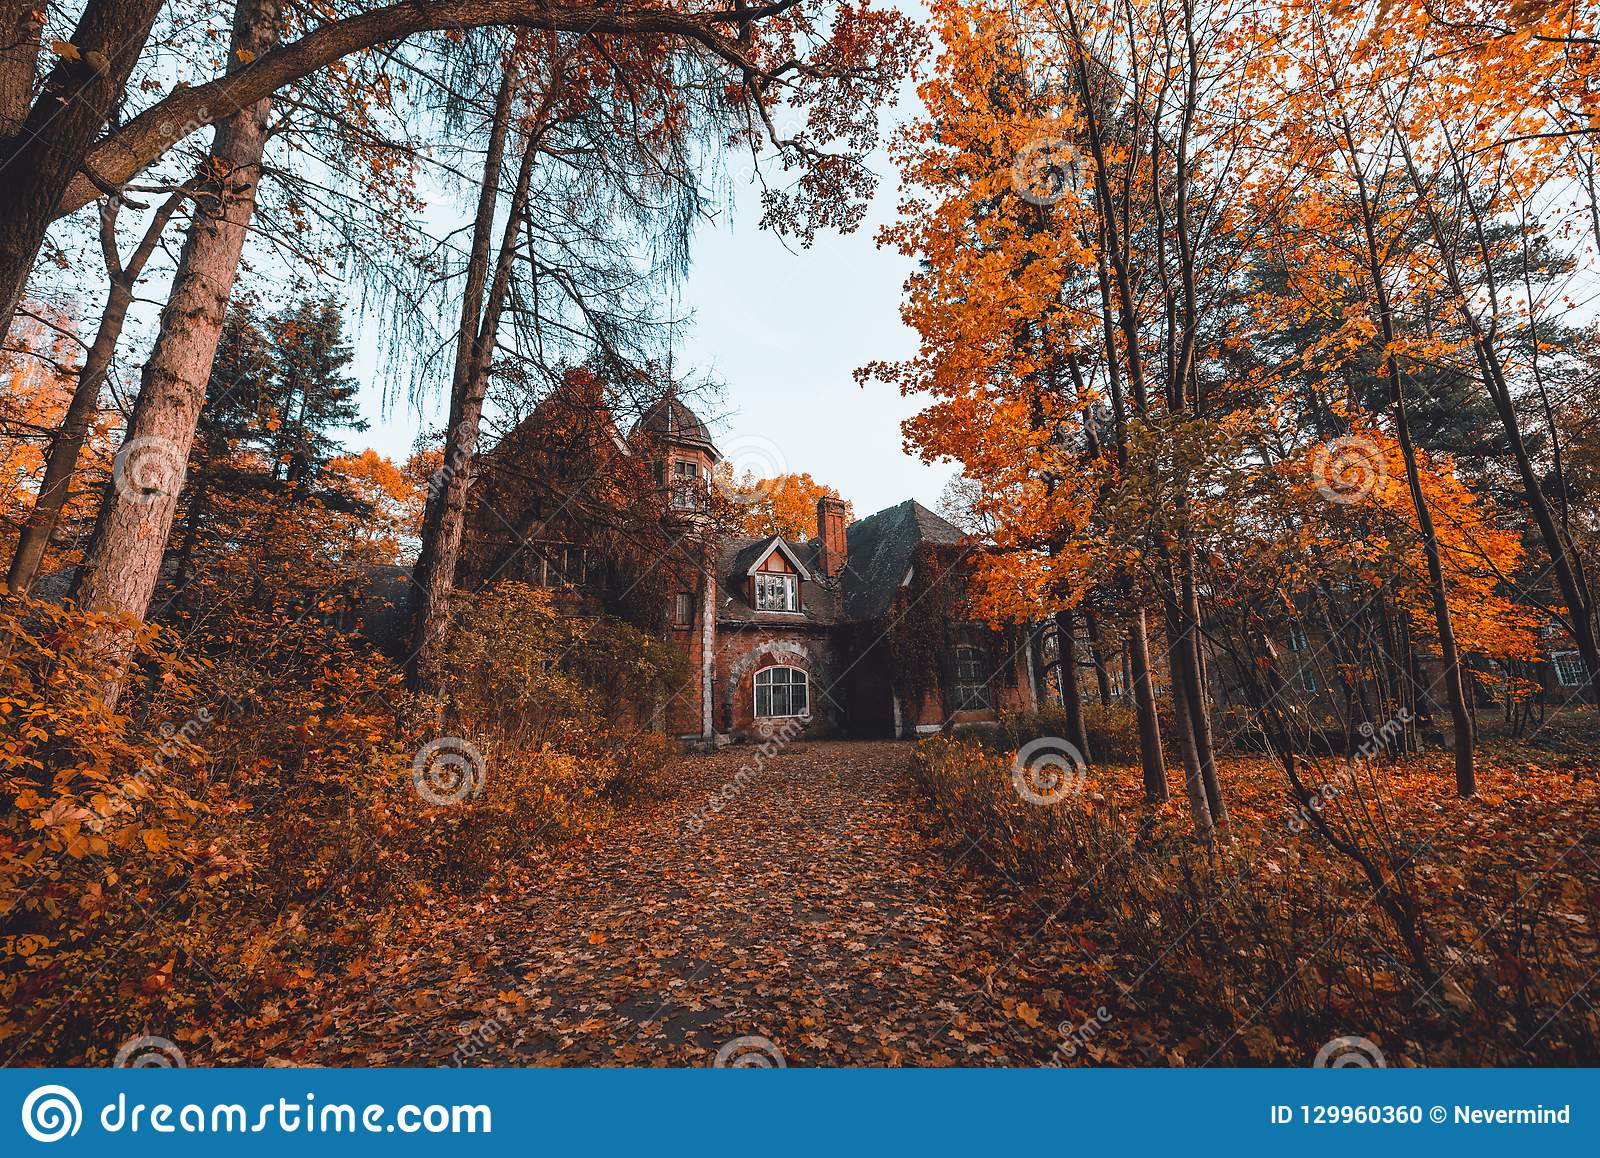 Manor house with trees in autumn colors and fall trees. Old Victorian Haunted House with ghosts. Abandoned house in autumn wood